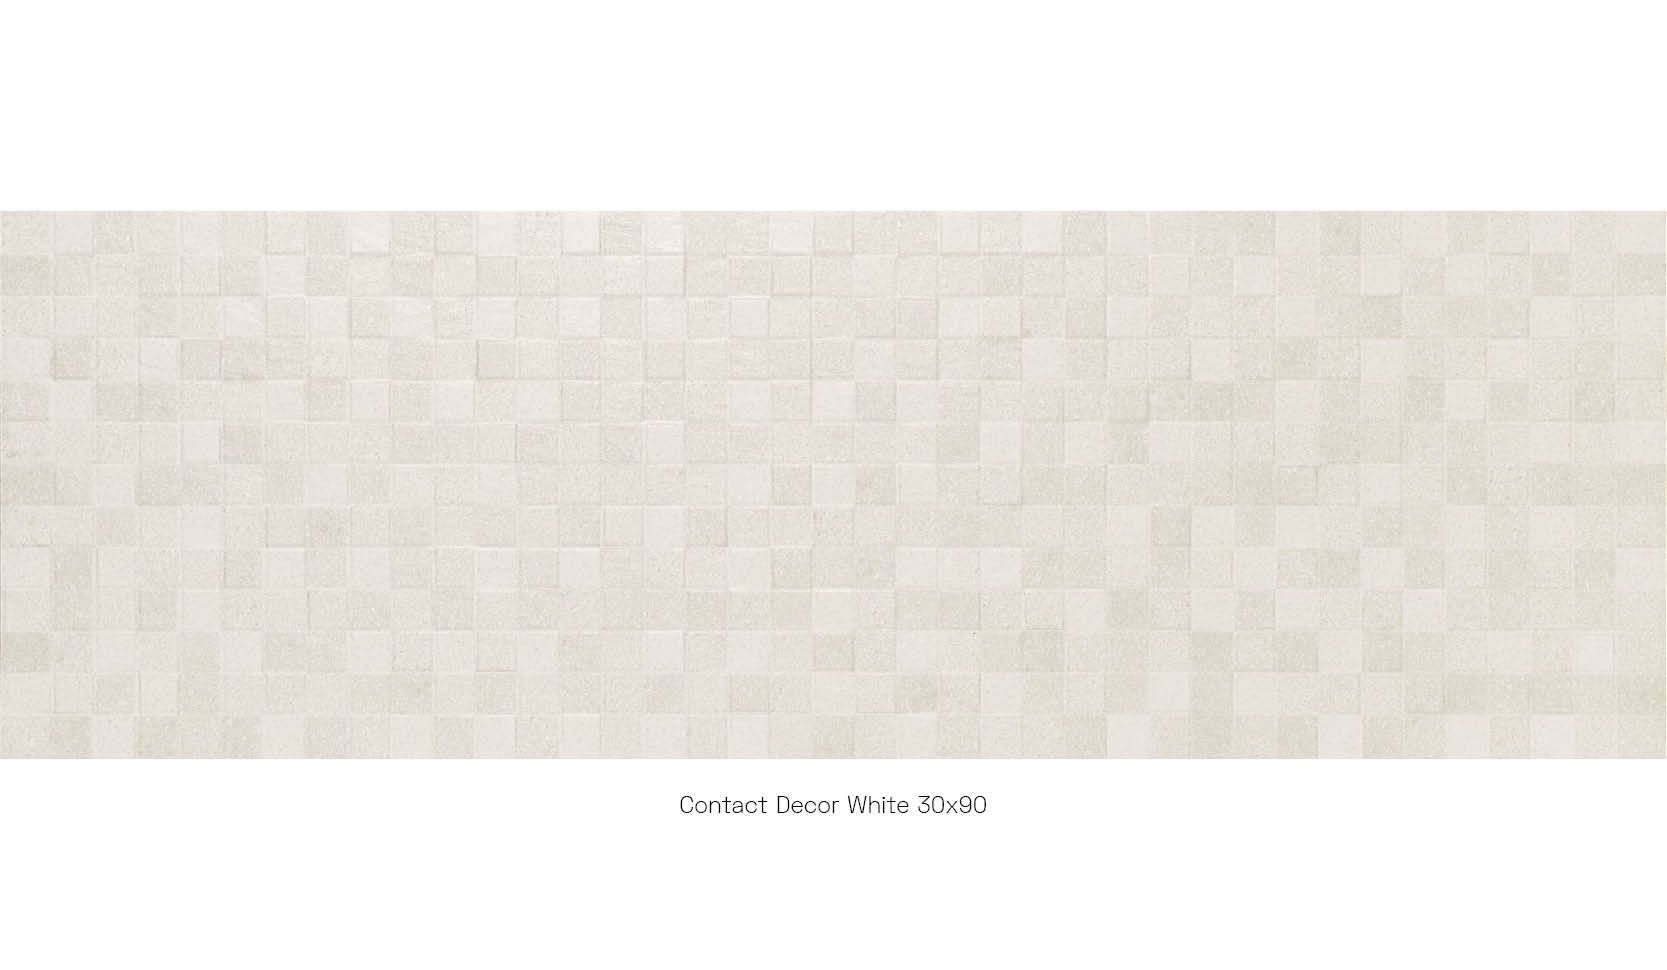 Contact decor white 30 x 90